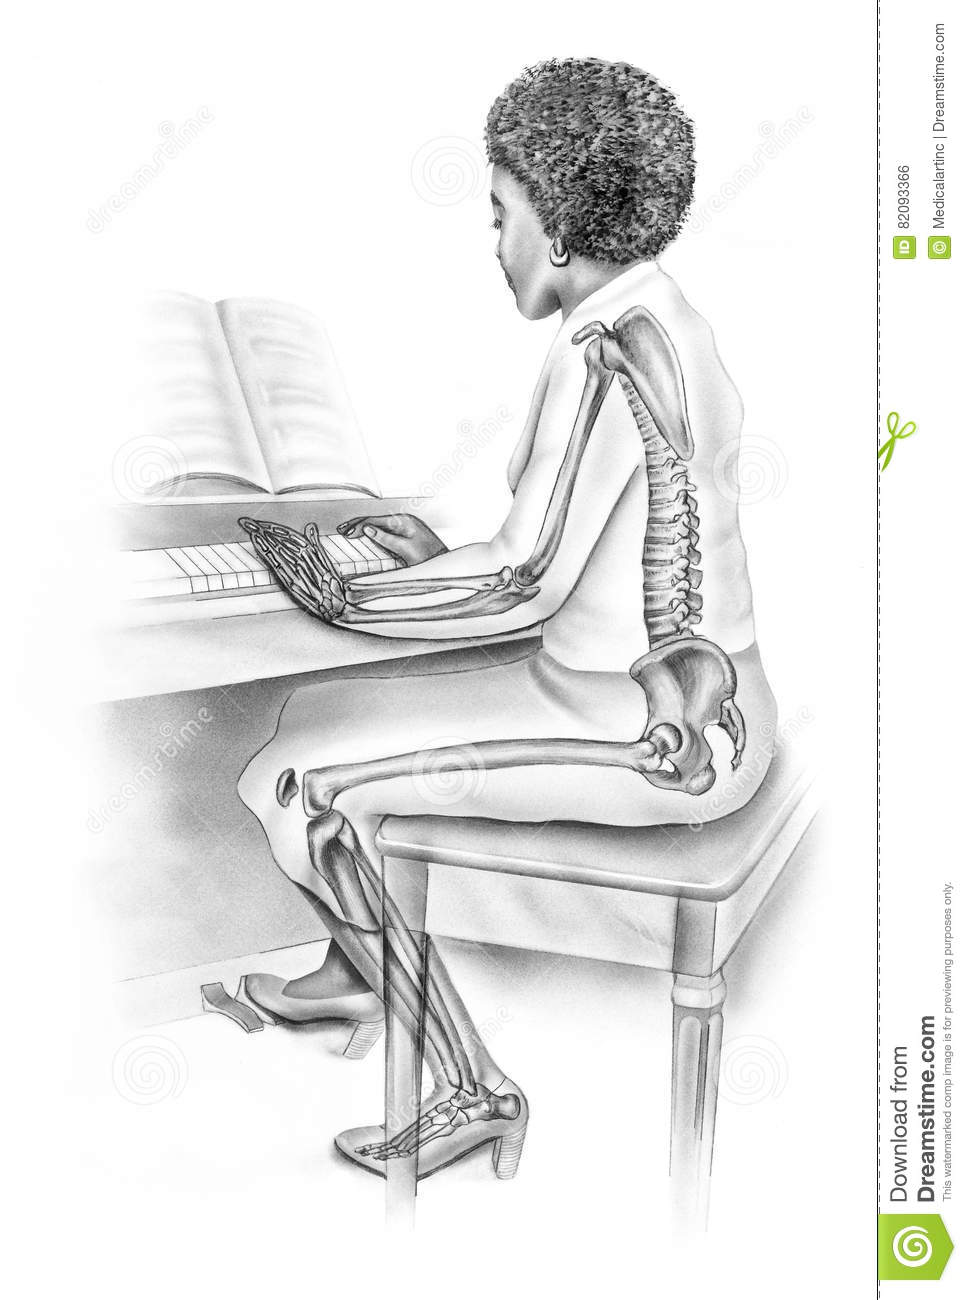 Womens Anatomy In Everyday Life Skeletal Structure Of Woman